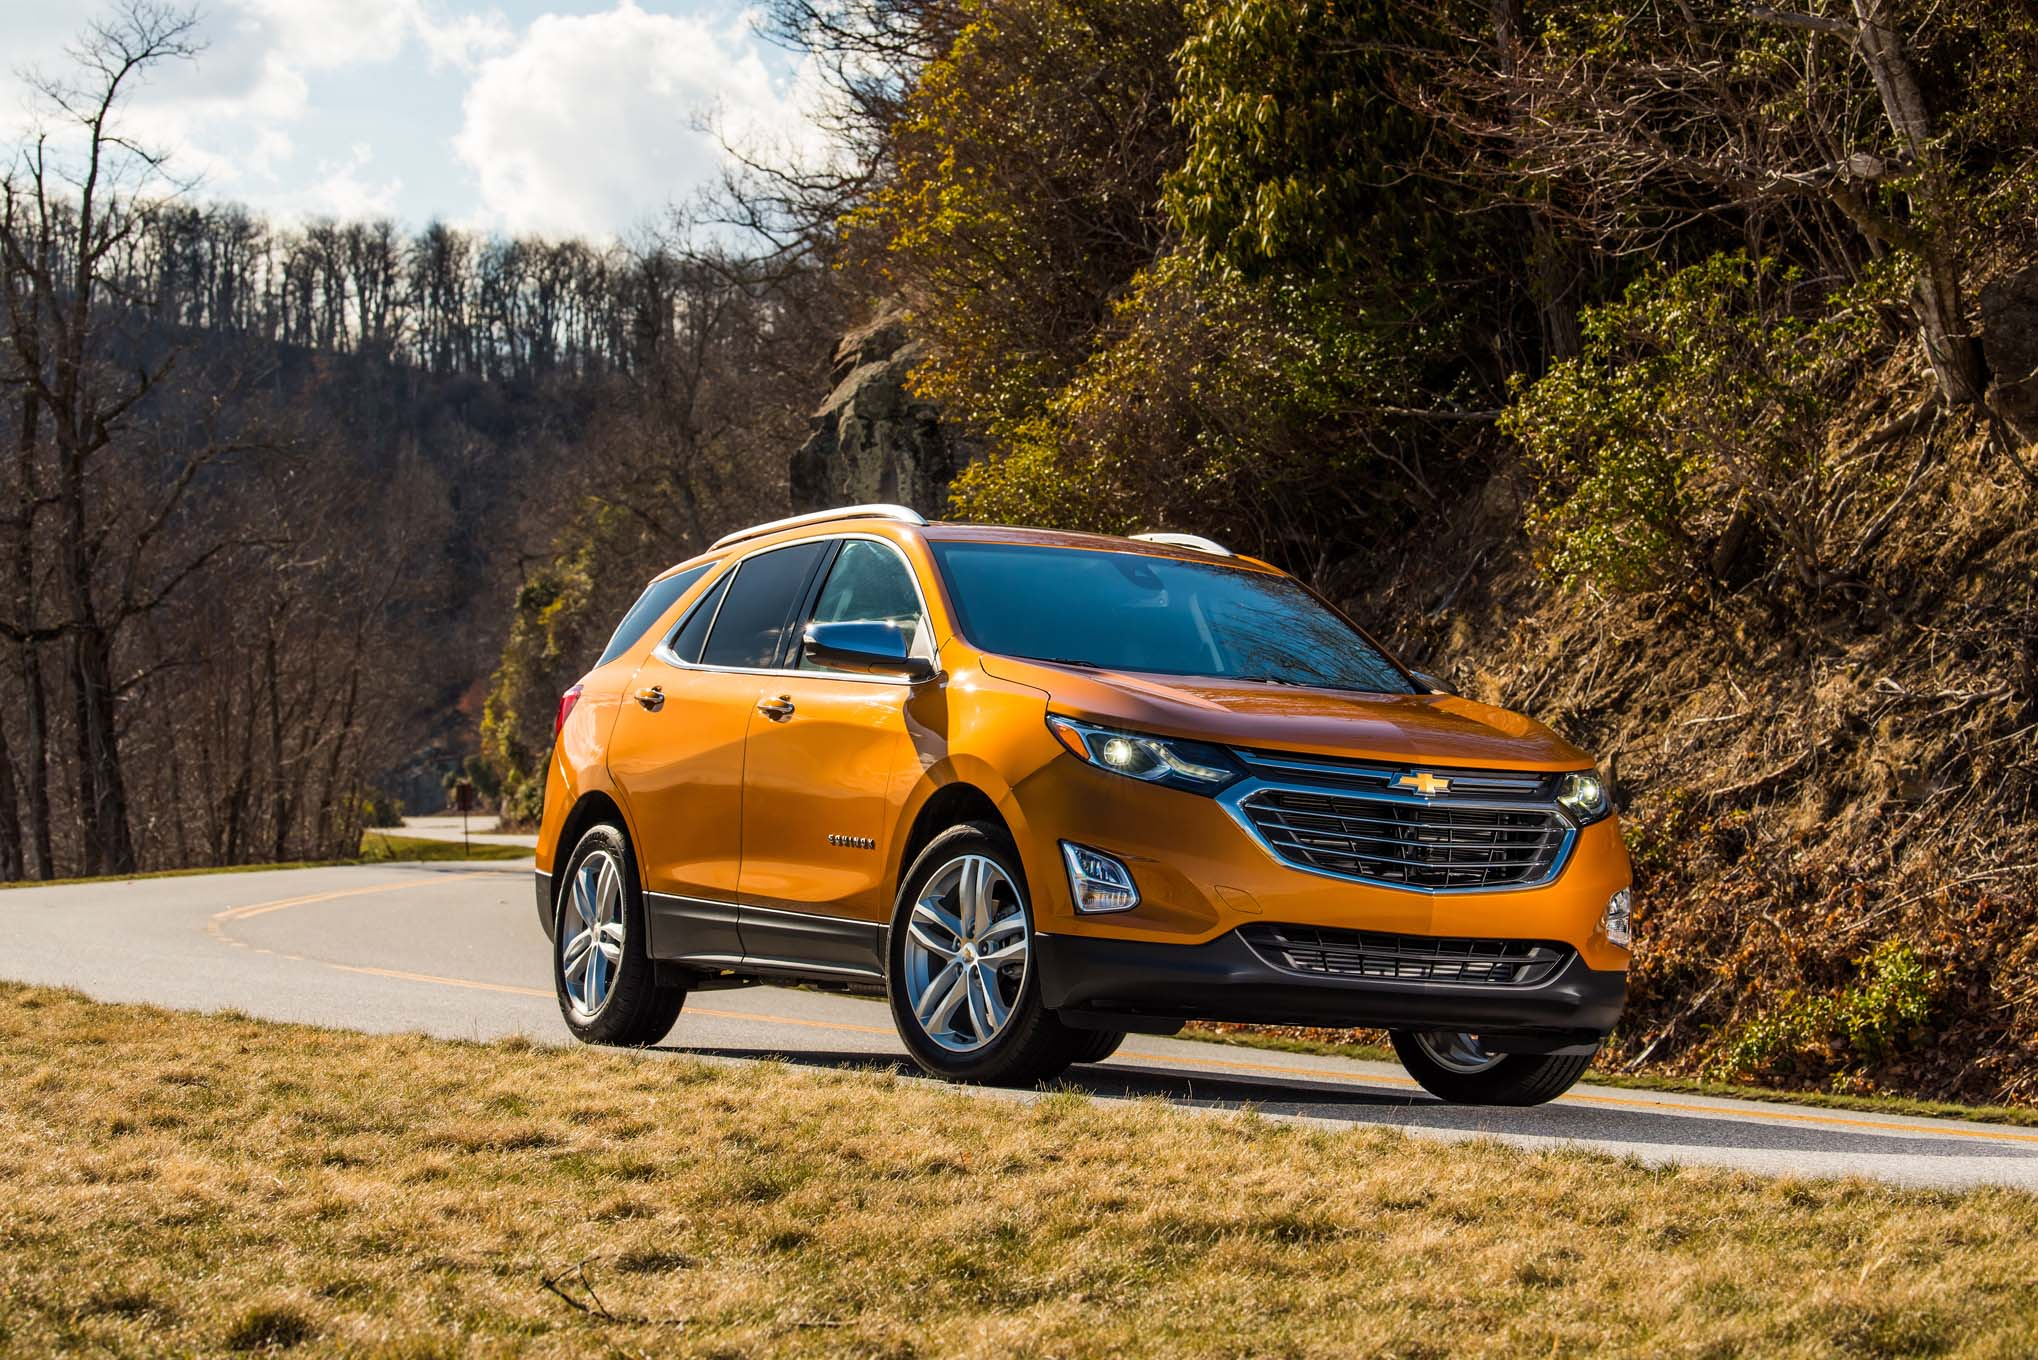 2018 Chevrolet Equinox First Drive Review | Automobile ...